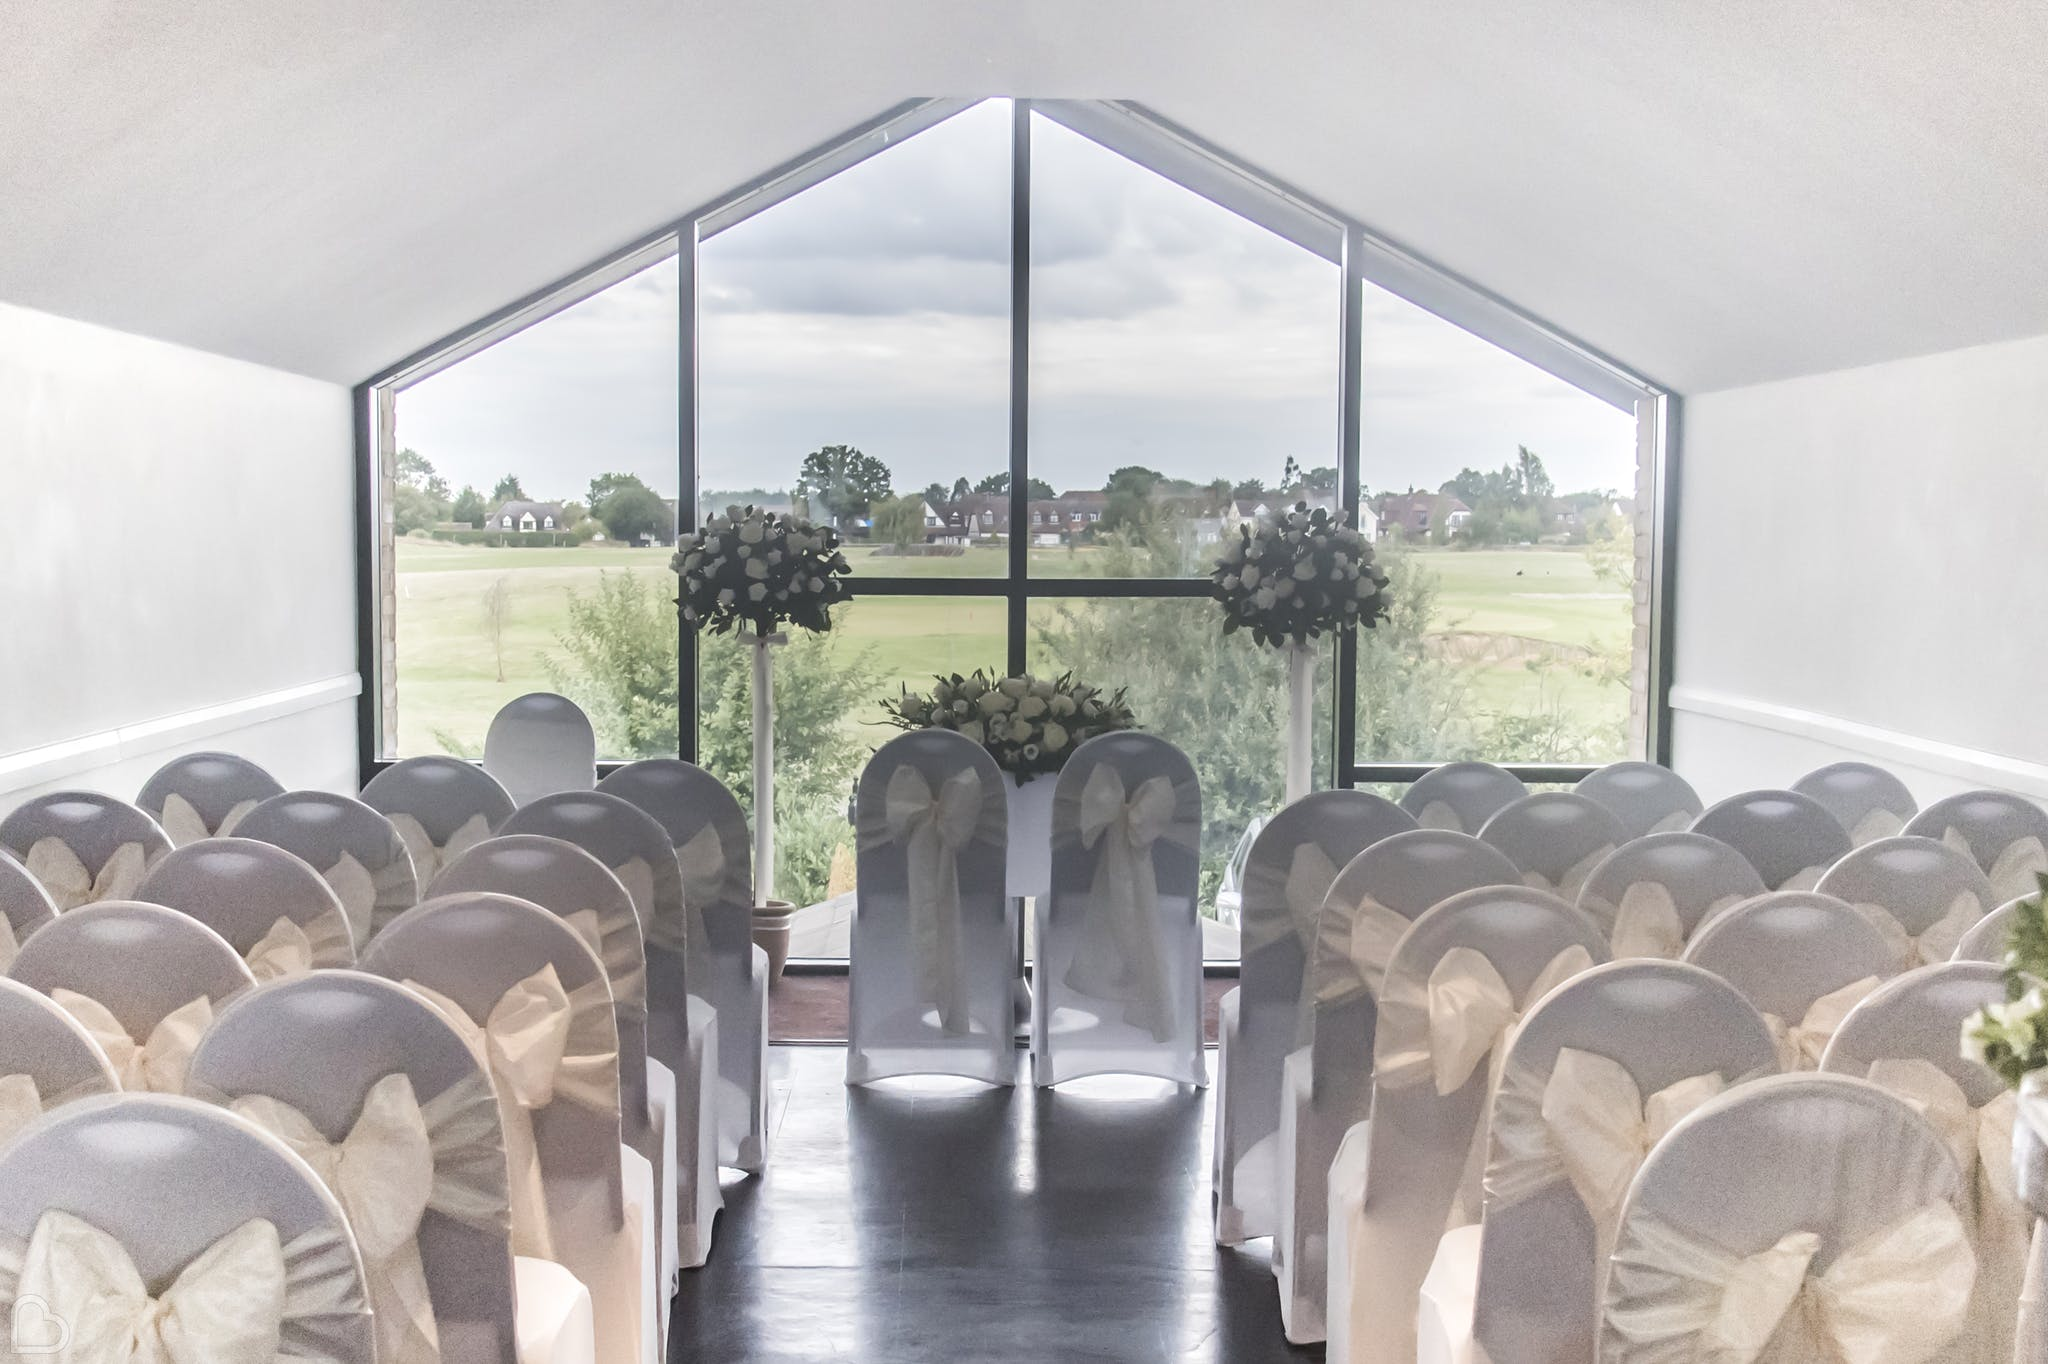 blakes wedding venue in essex set up for a ceremony